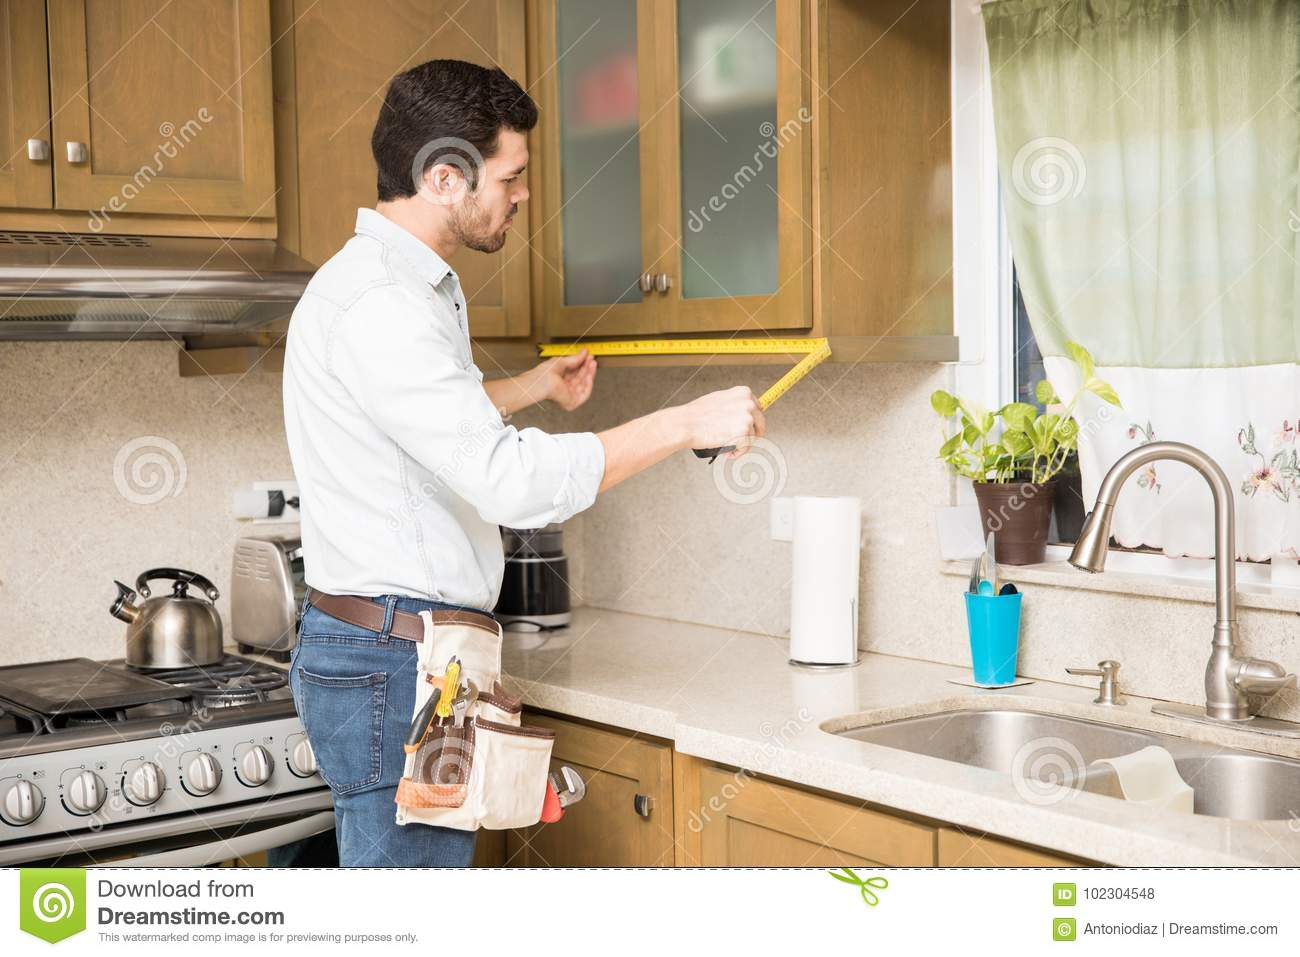 Handyman Measuring A Kitchen Cabinet Stock Photo - Image of kitchen ...